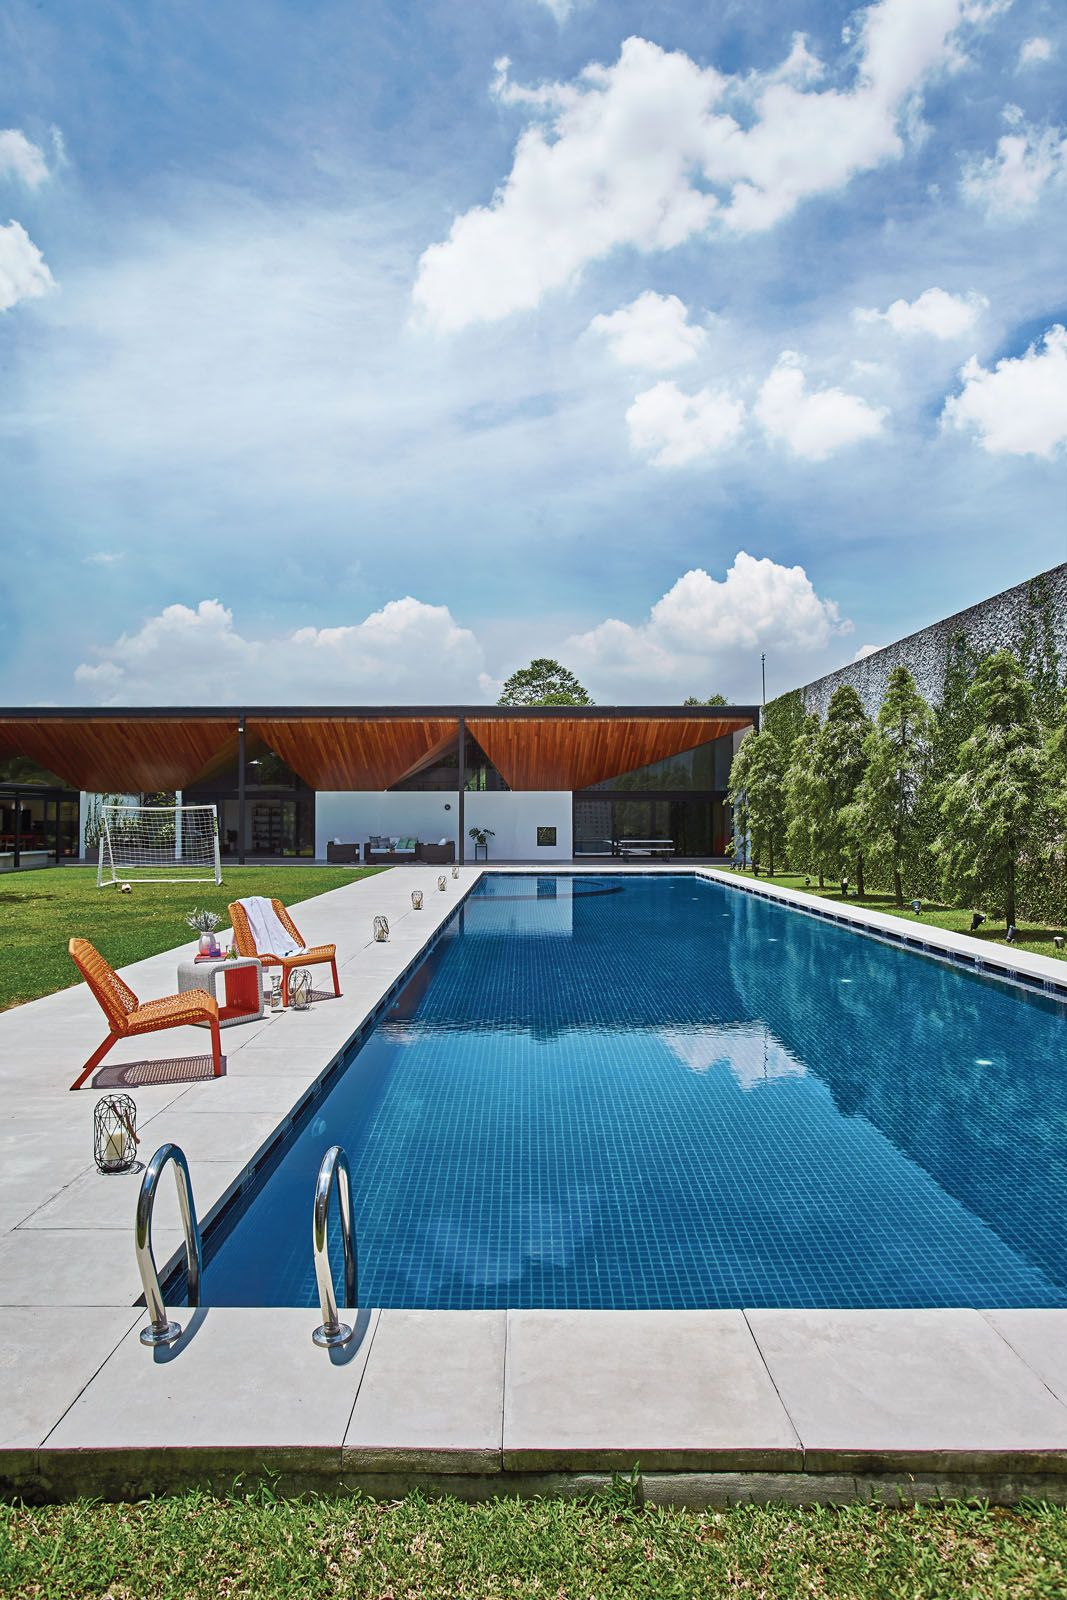 The family enjoys playing football at the spacious field and swimming laps in the pool